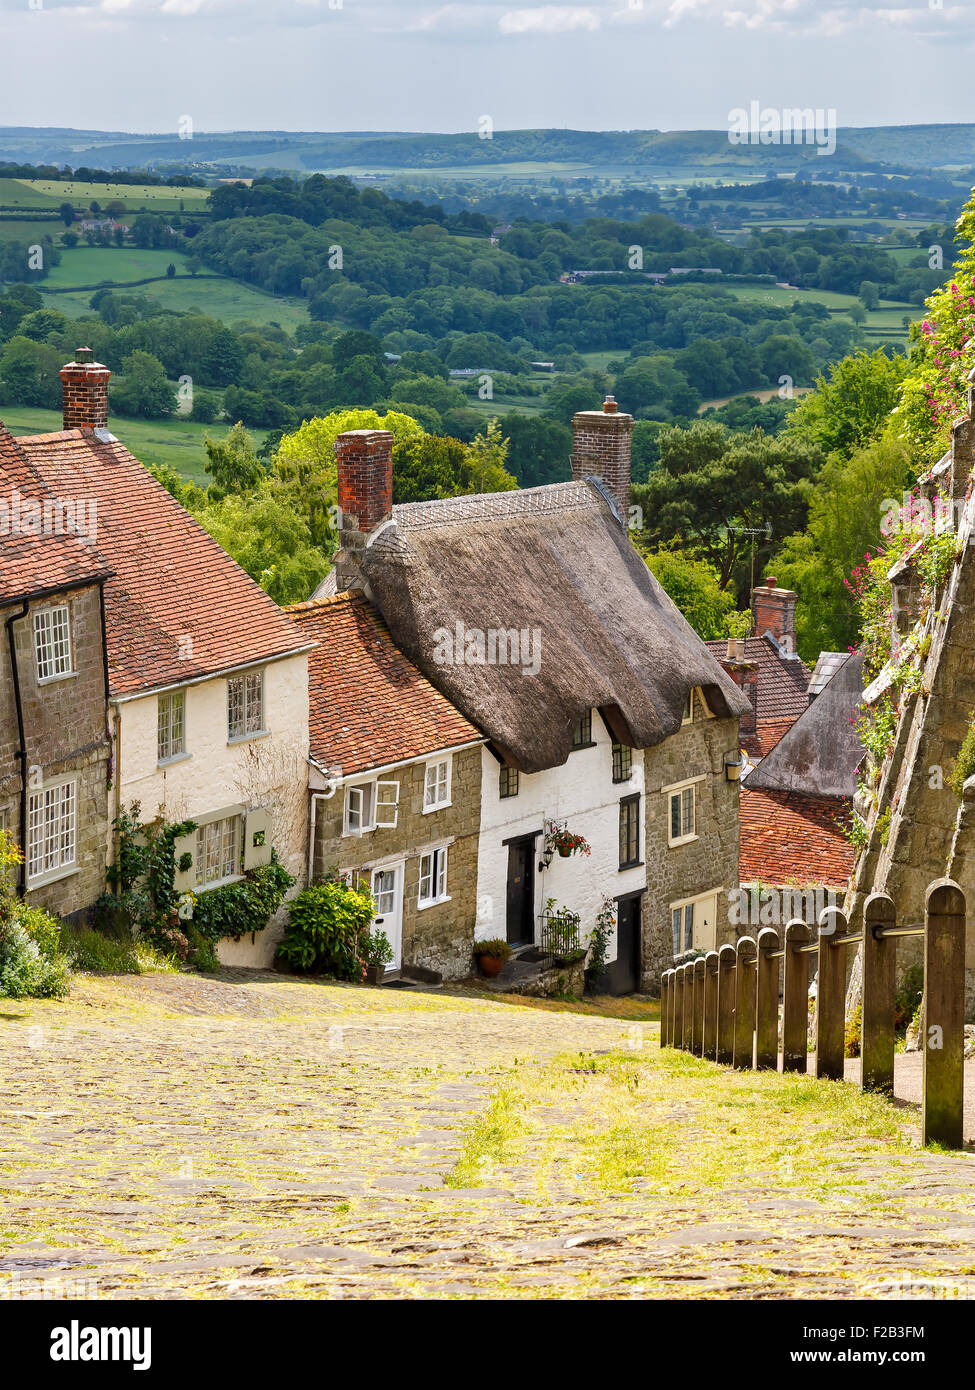 Famous view of Picturesque cottages on cobbled street at Gold Hill, Shaftesbury Dorset England UK Europe Stock Photo